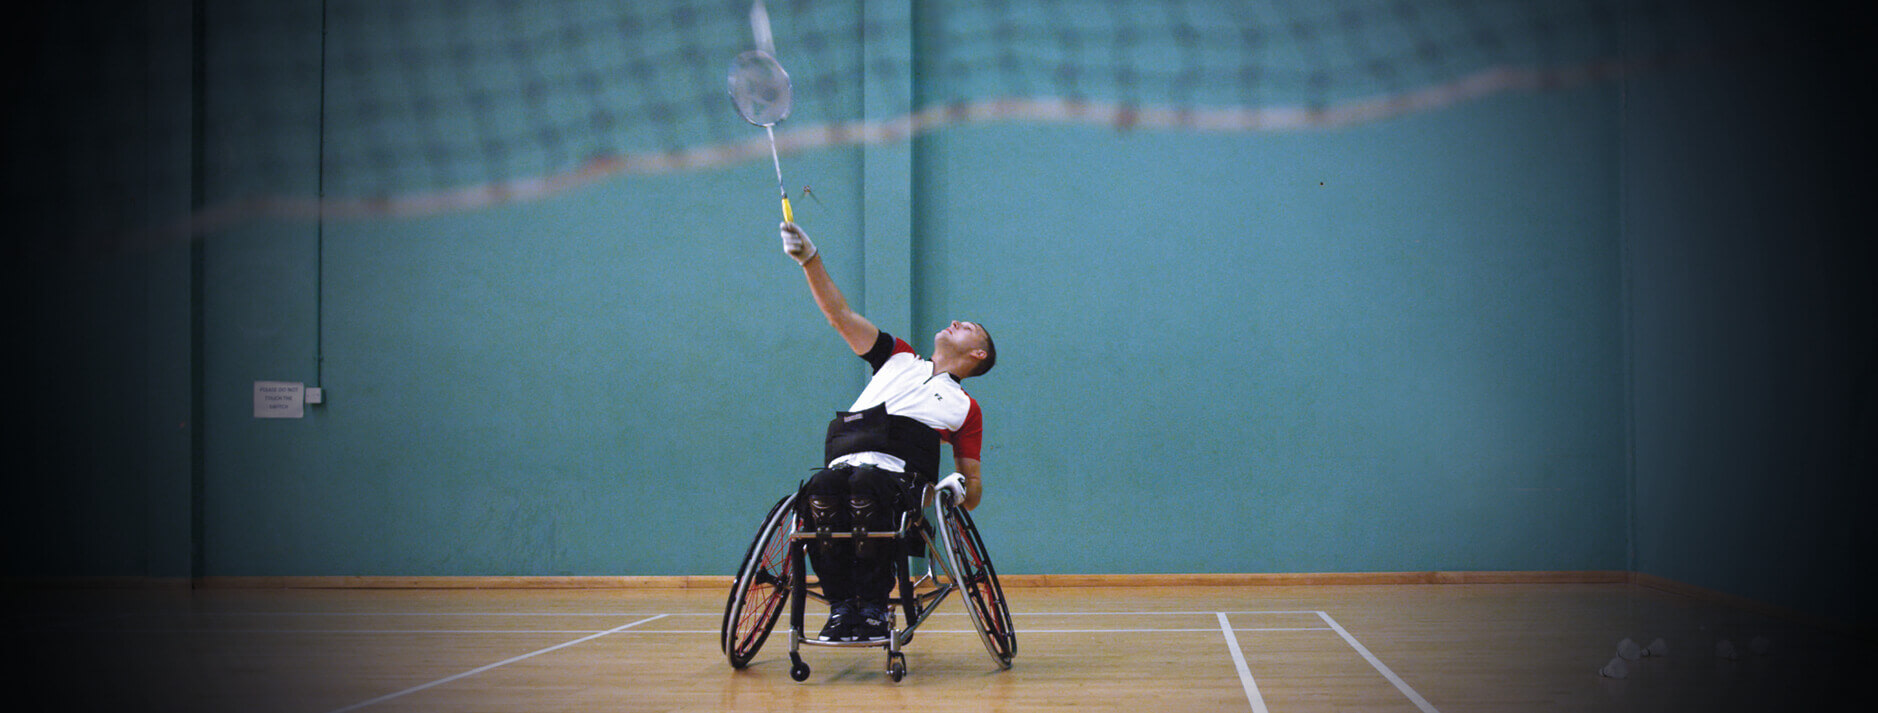 Man playing wheelchair badminton